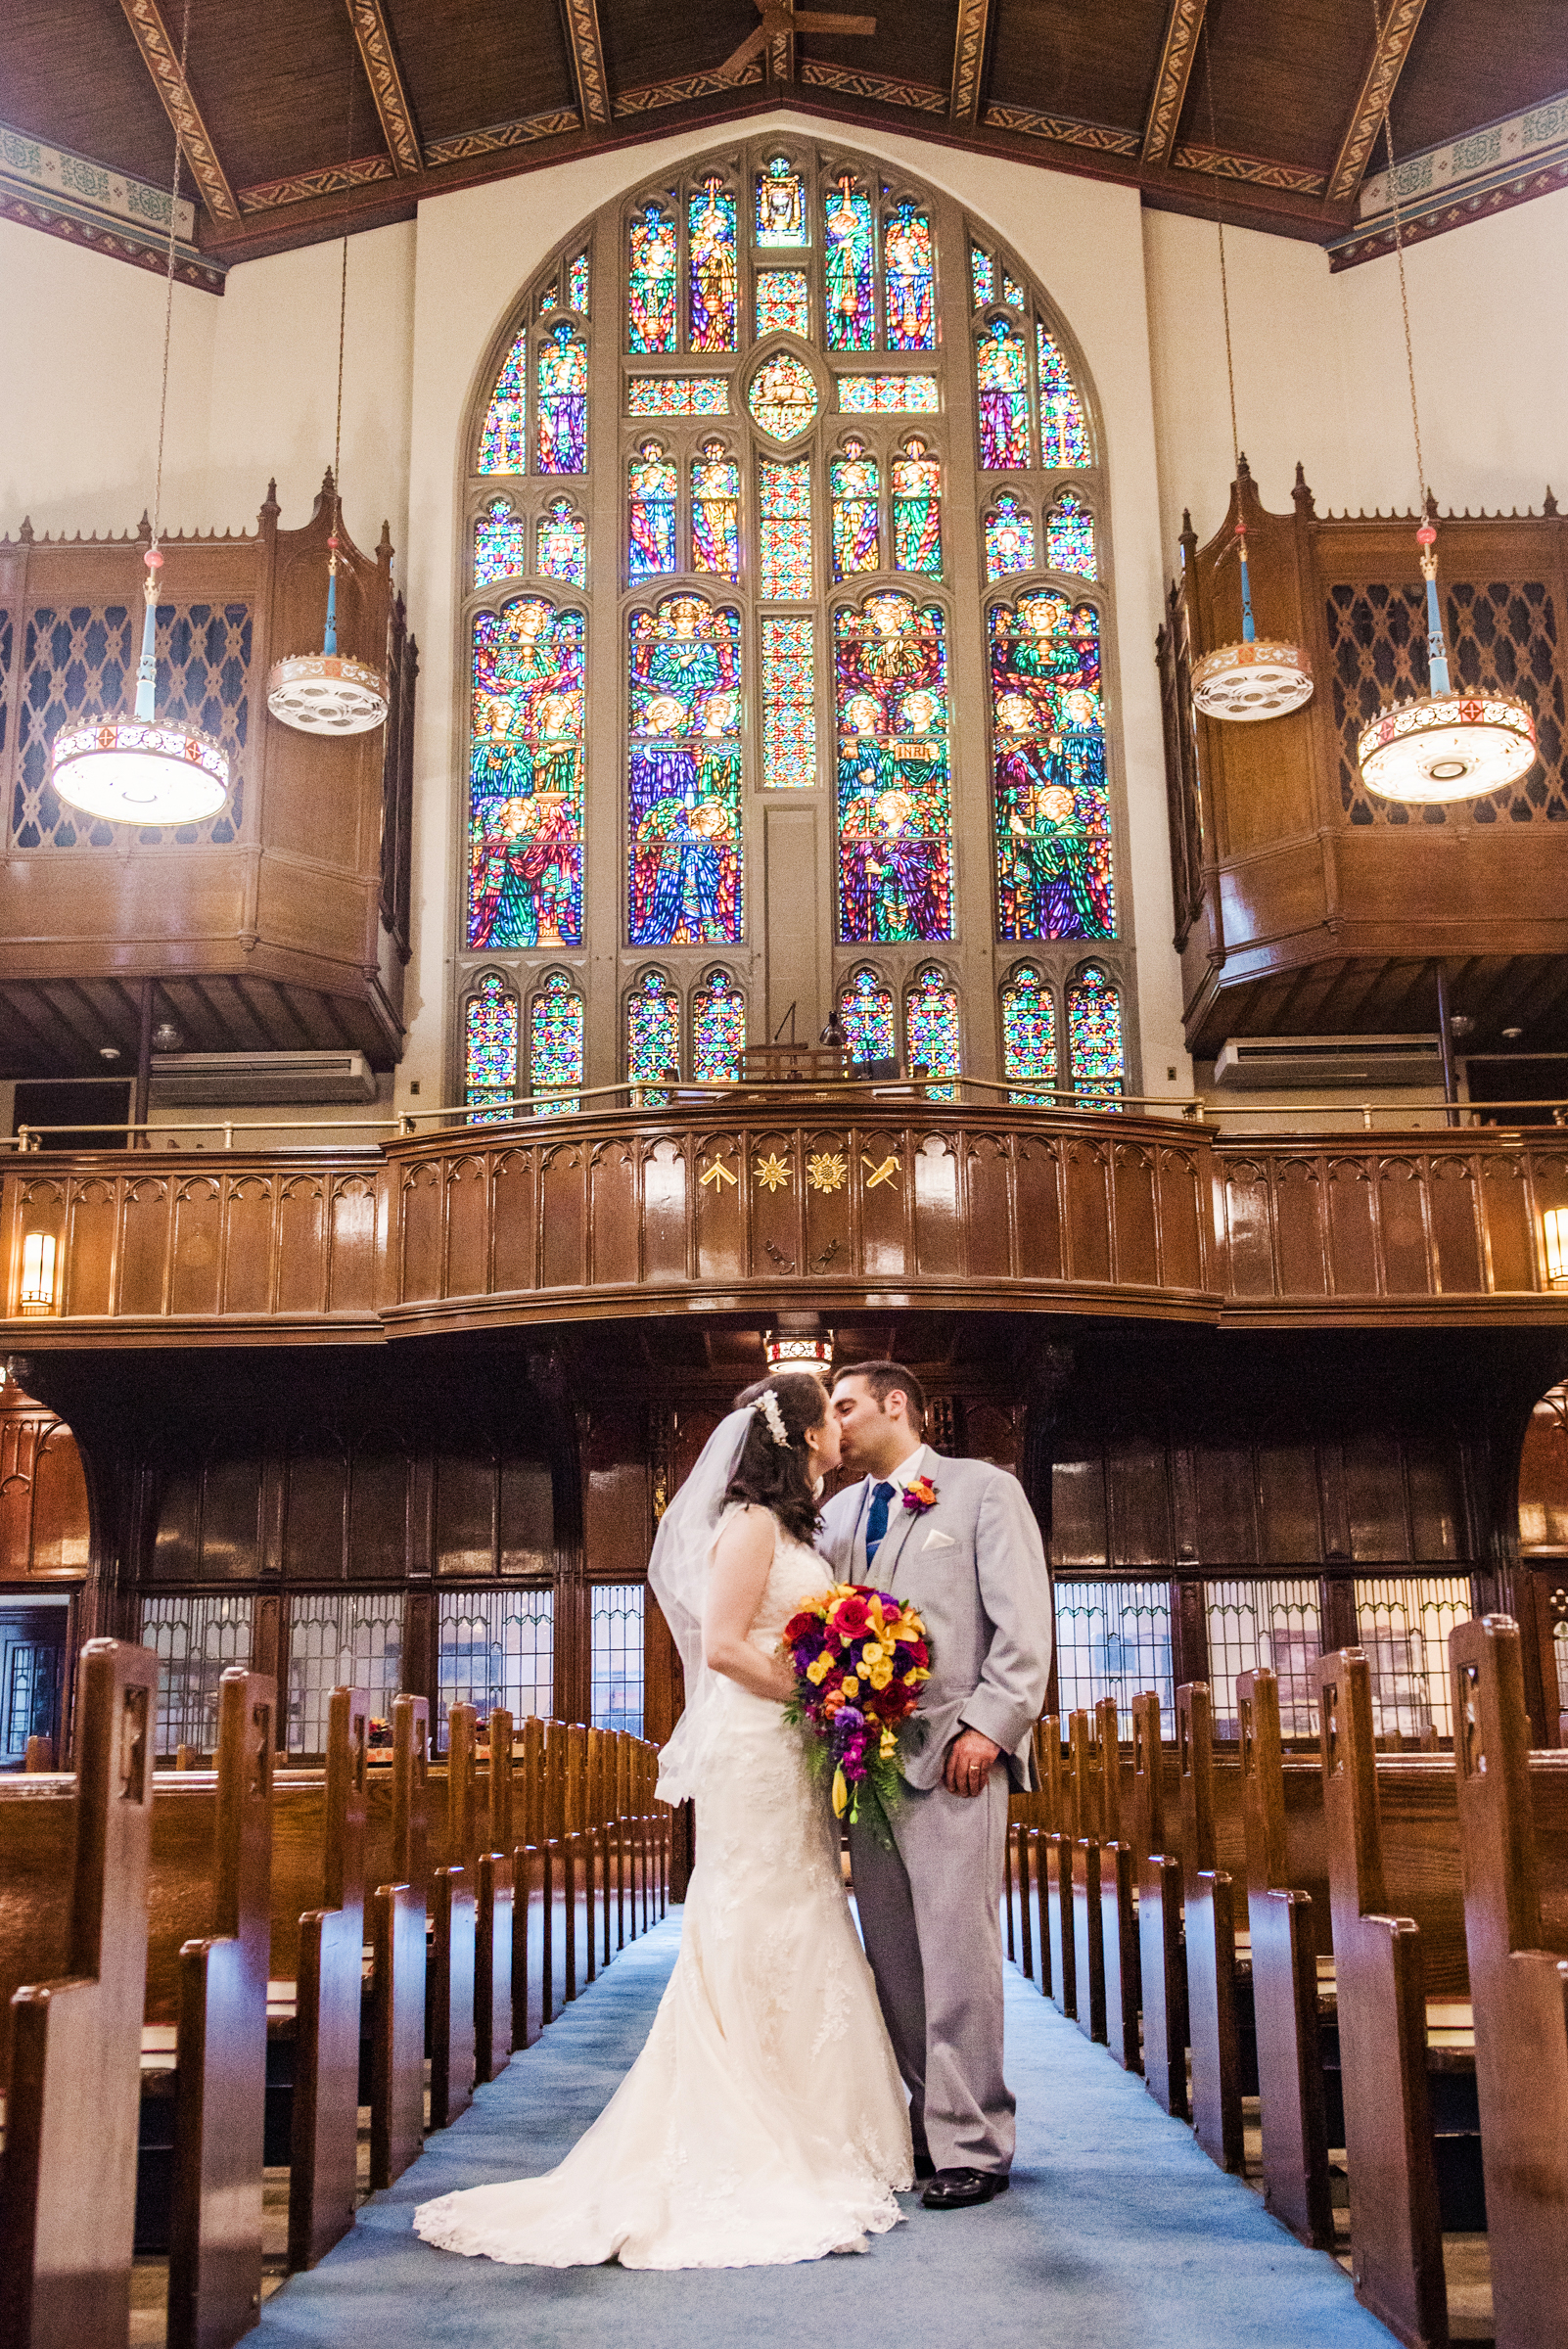 JILL_STUDIO_Wedding_JILL_STUDIO_Rochester_NY_Photographer_20-DSC_1664.jpg